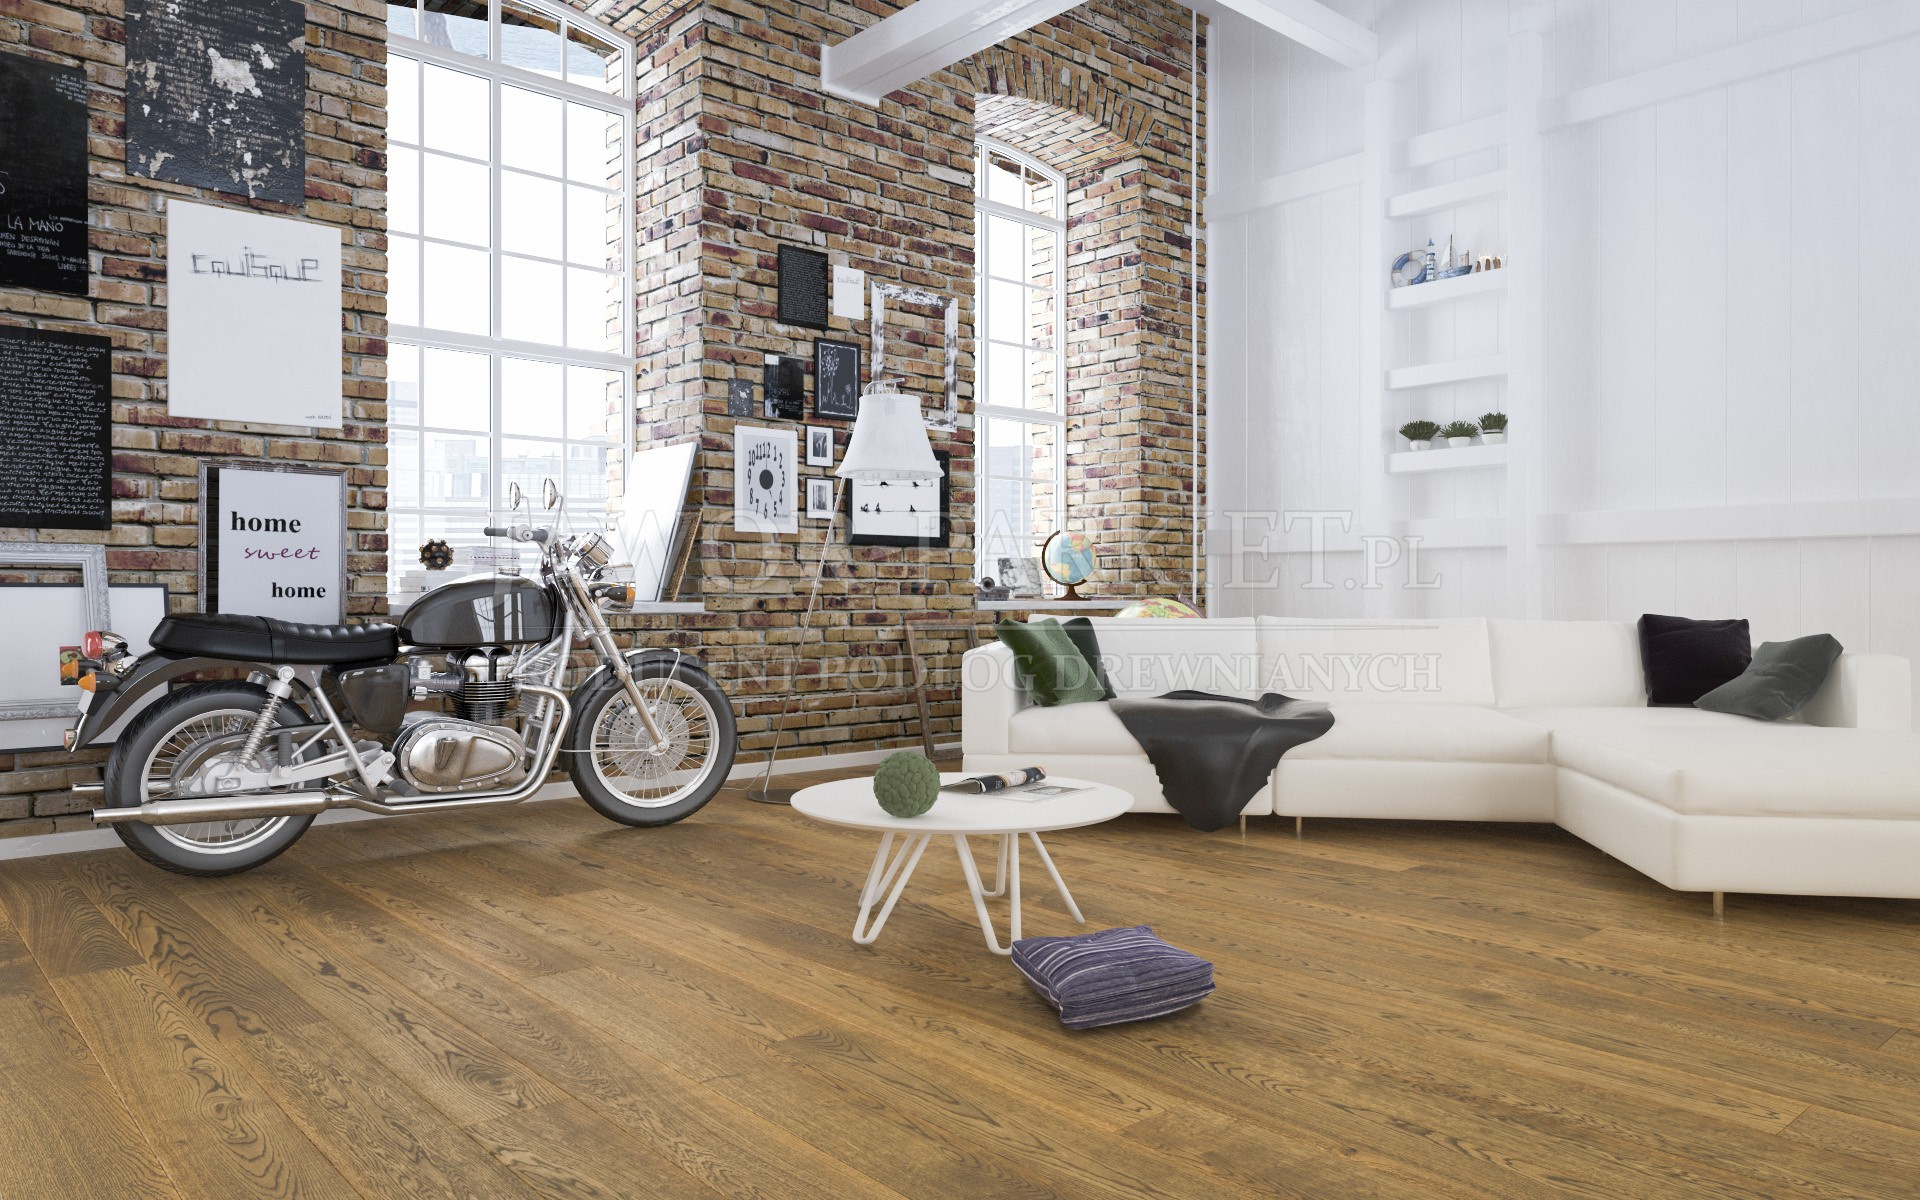 Oak color oro jawor parkiet manufacturer of wooden floors for Match the ocean floor feature with its characteristic